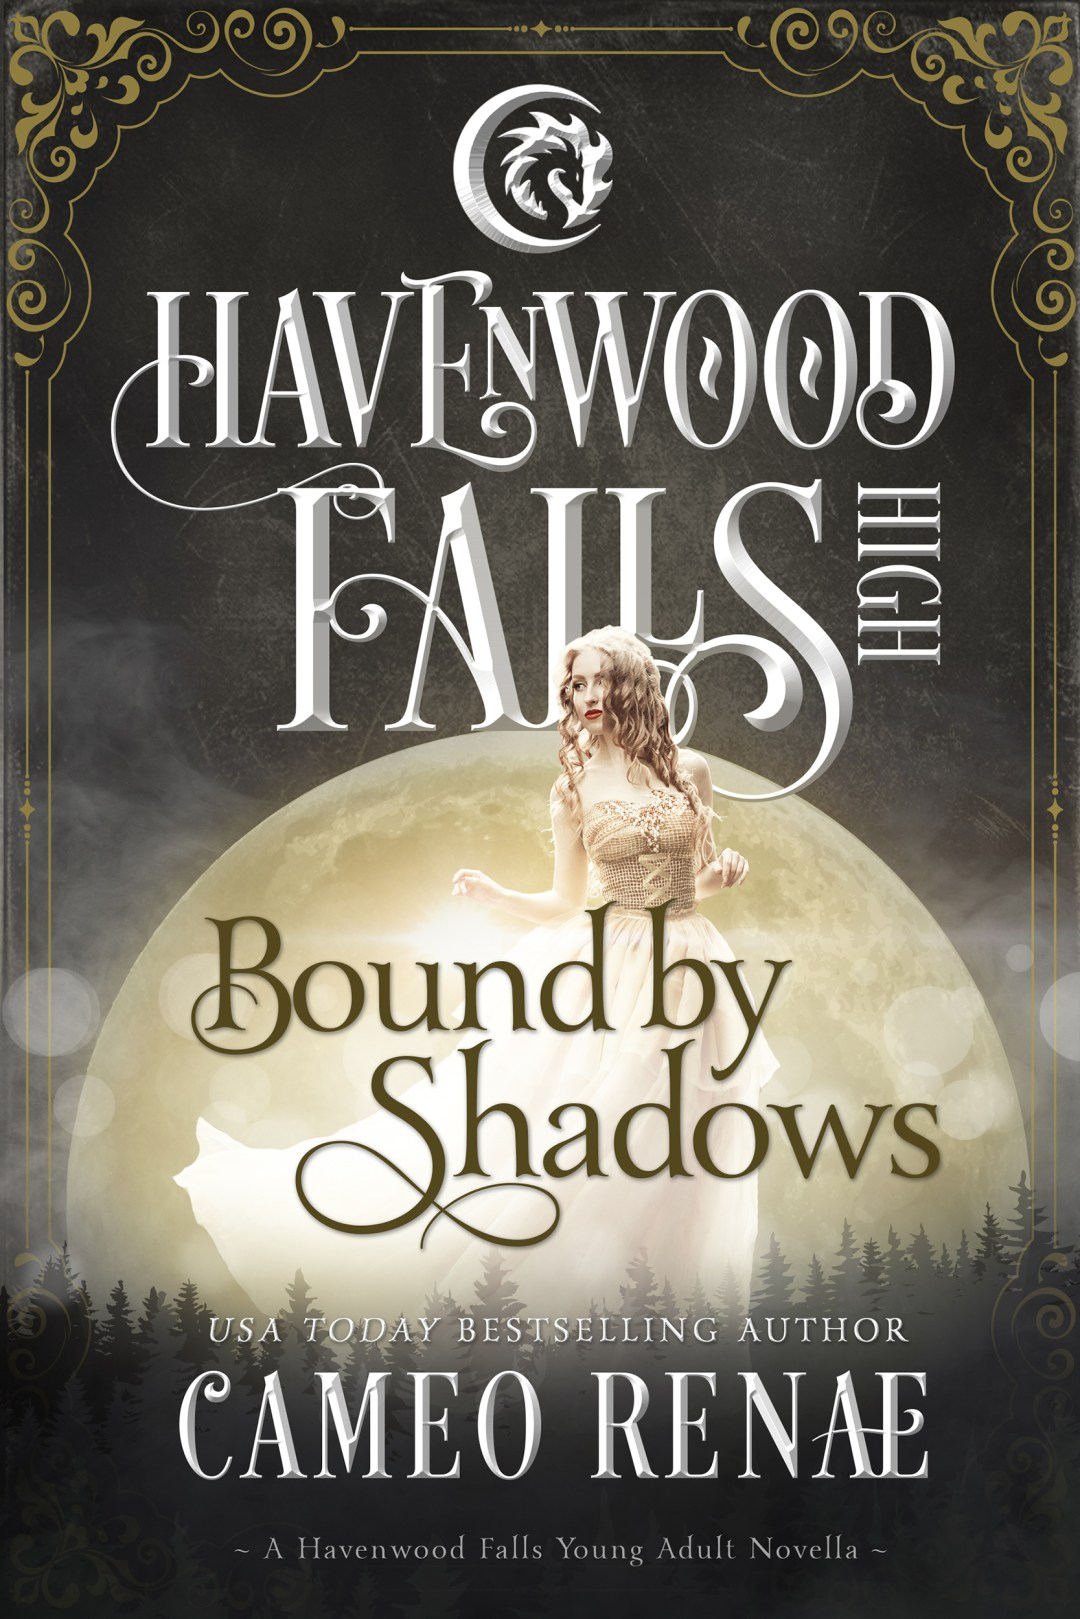 Bound by shadows a havenwood falls high novella by cameo renae as events start to spiral and danger rises eris turns to rylan for help in finding the person who spelled her brother so she can save his life solutioingenieria Image collections